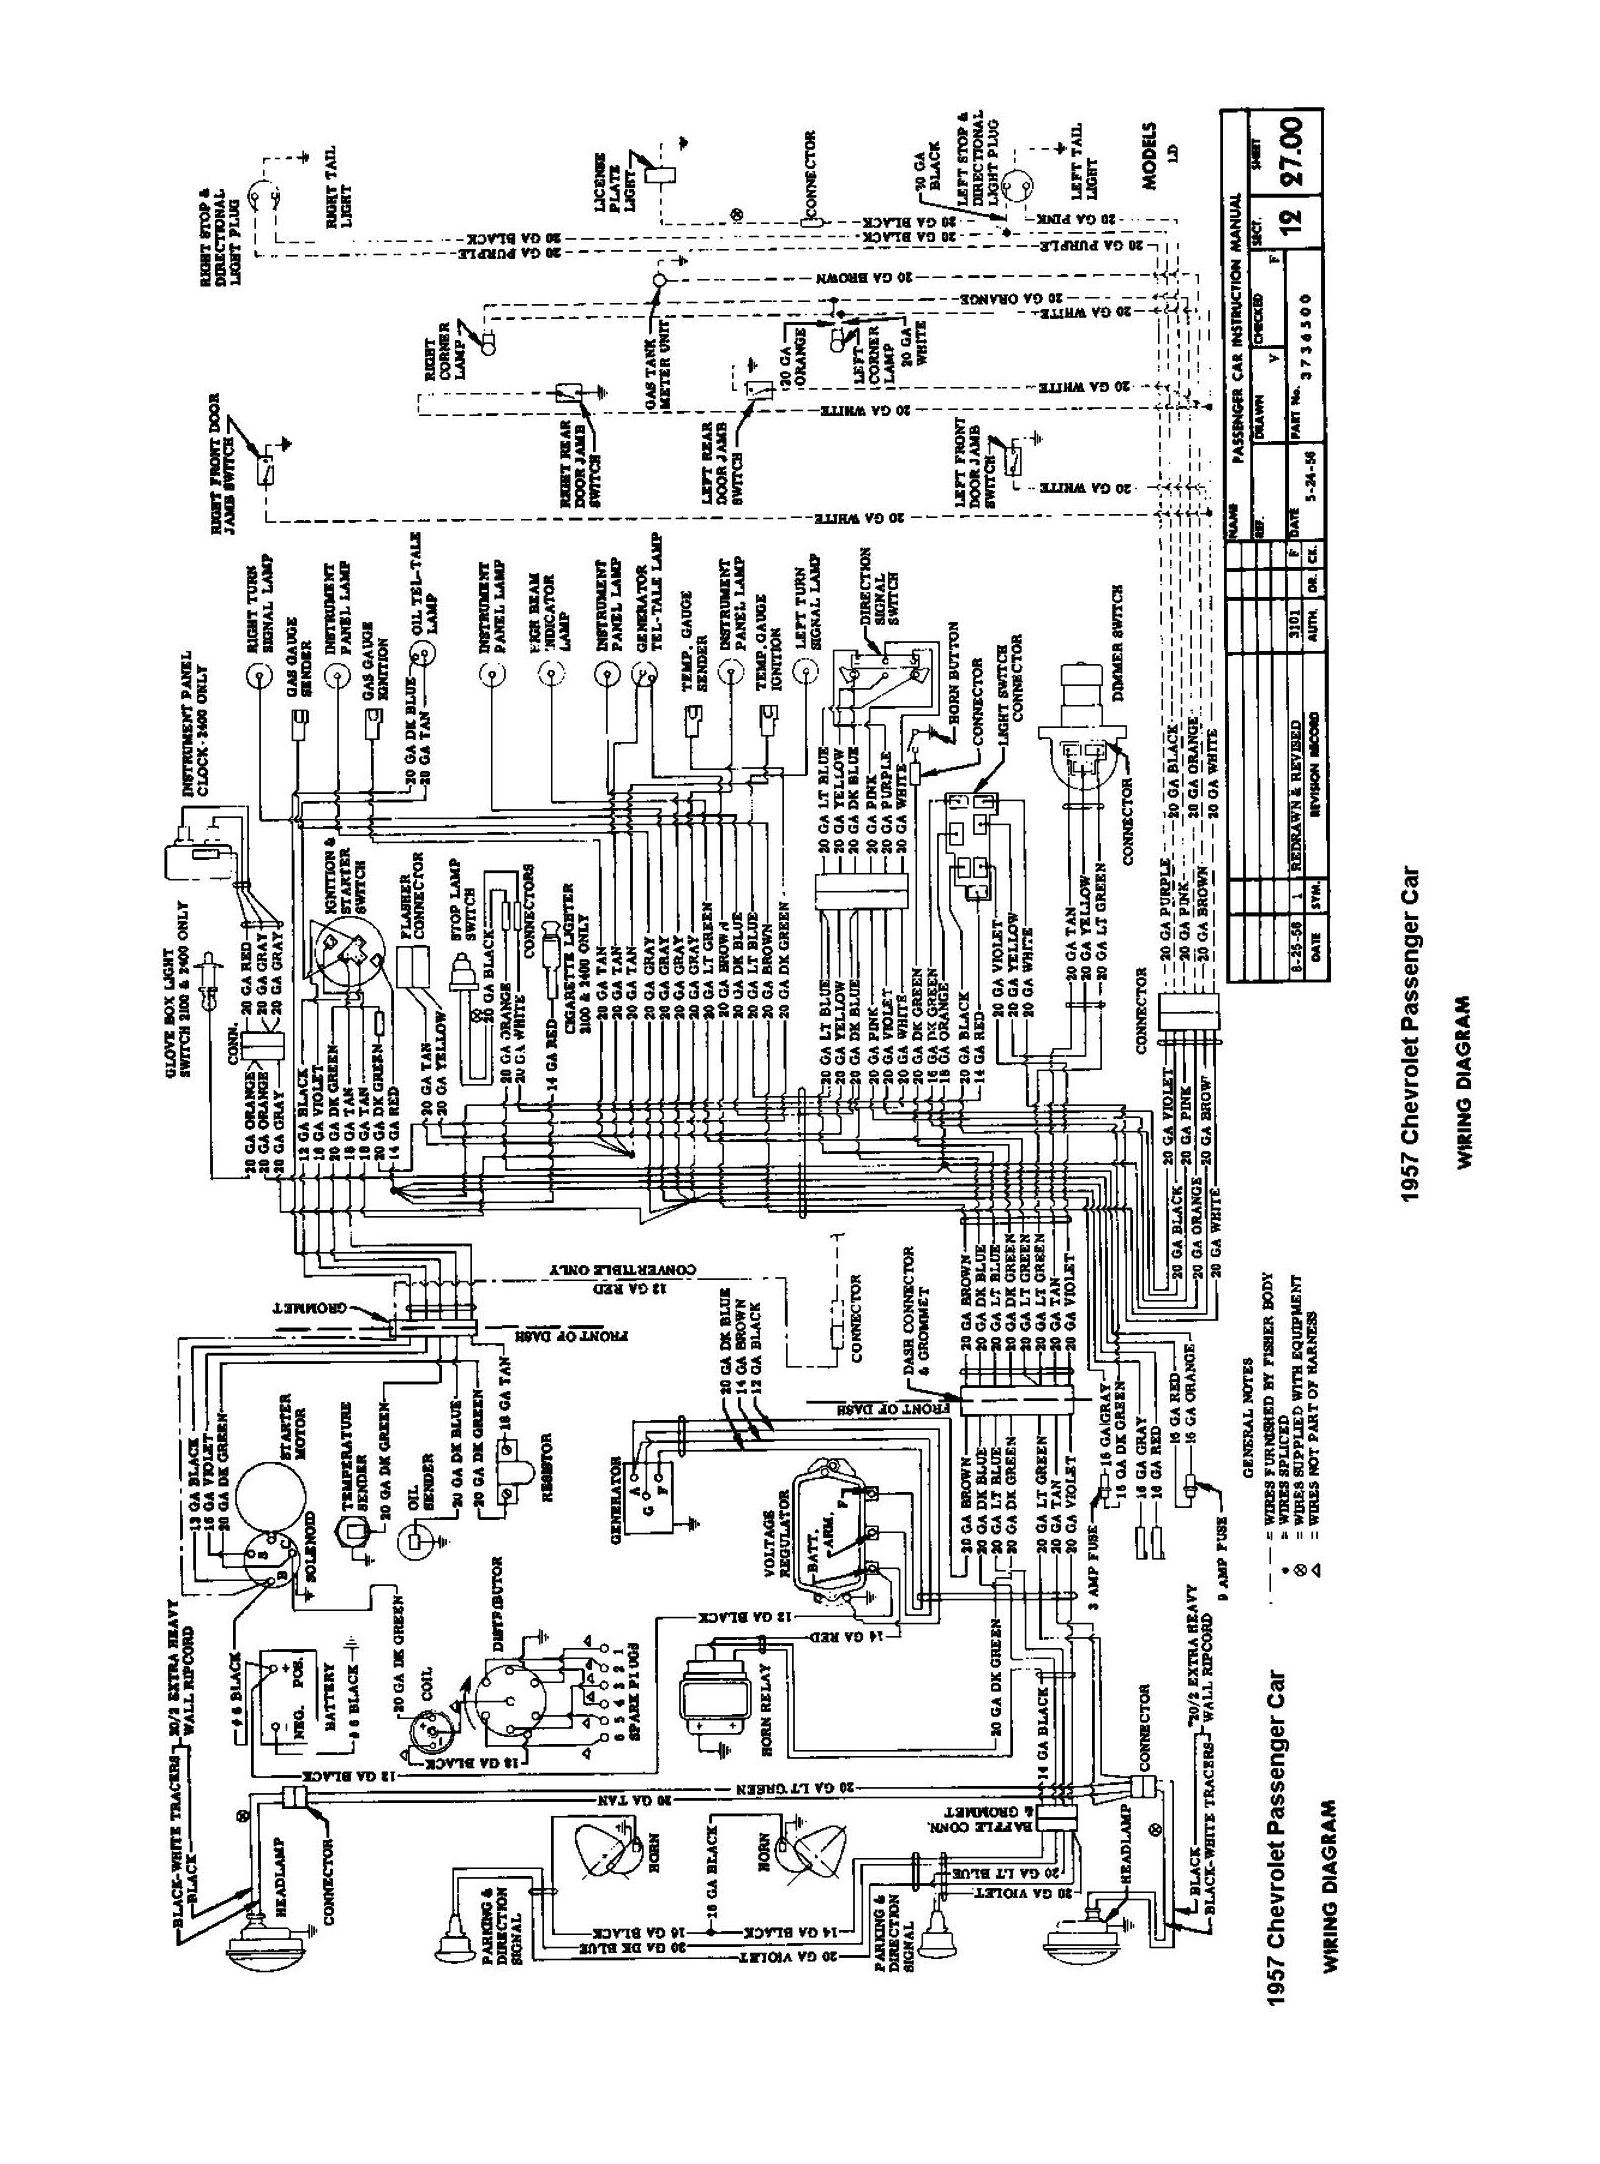 Chevrolet Volt Wiring Diagram The Portal And Forum Of Forester Third Level Rh 18 2 11 Jacobwinterstein Com Chevy Charger Subaru